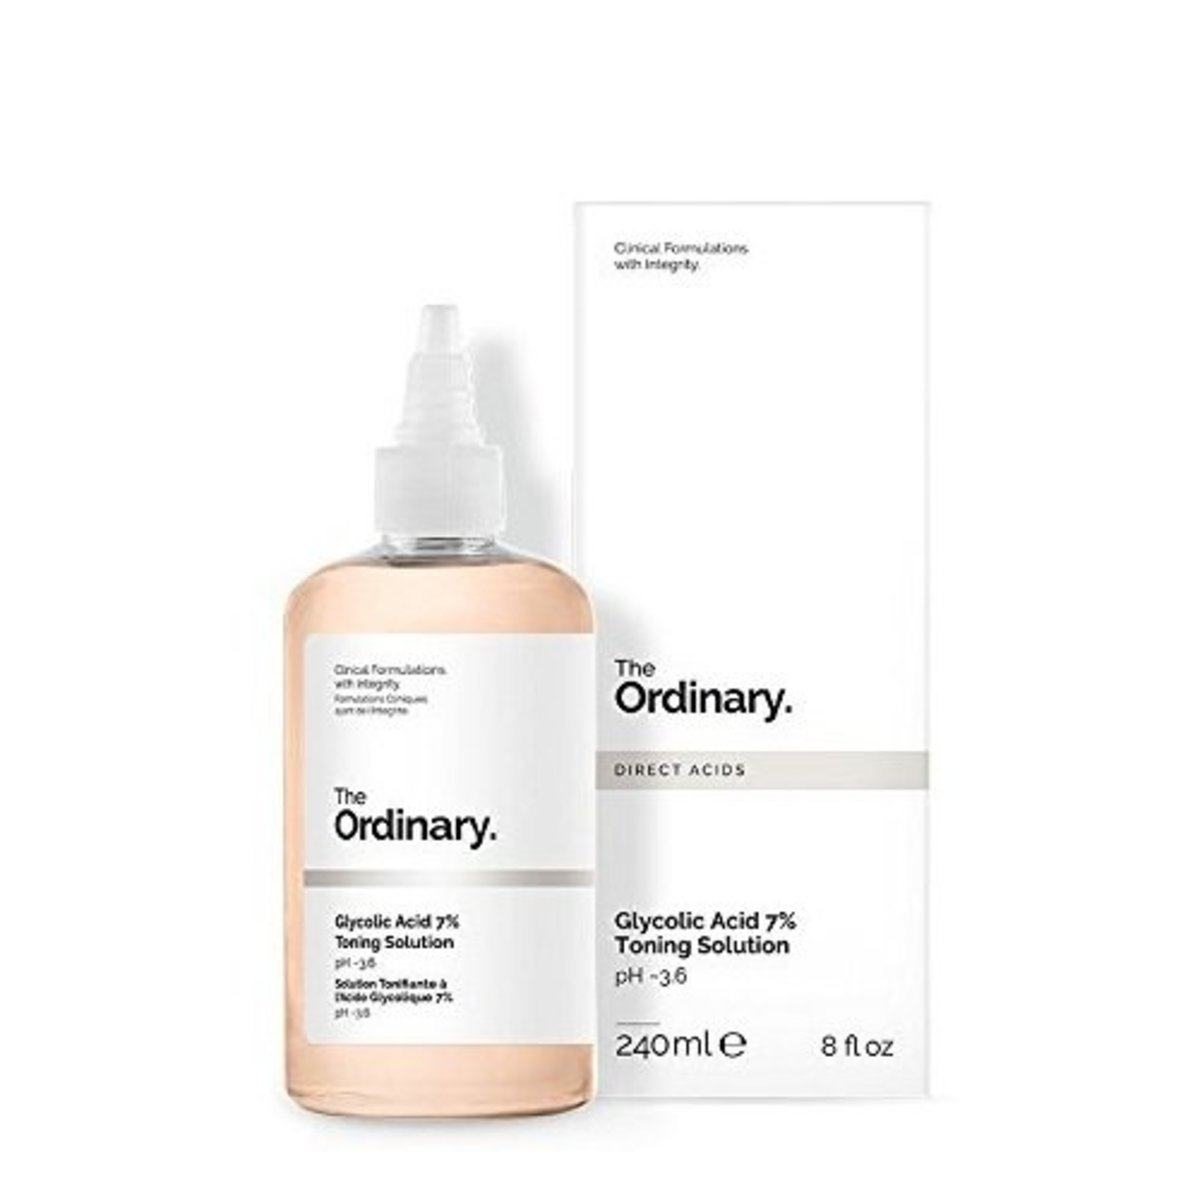 Glycolic Acid 7% Toning Solution (240ml) [Parallel Import]